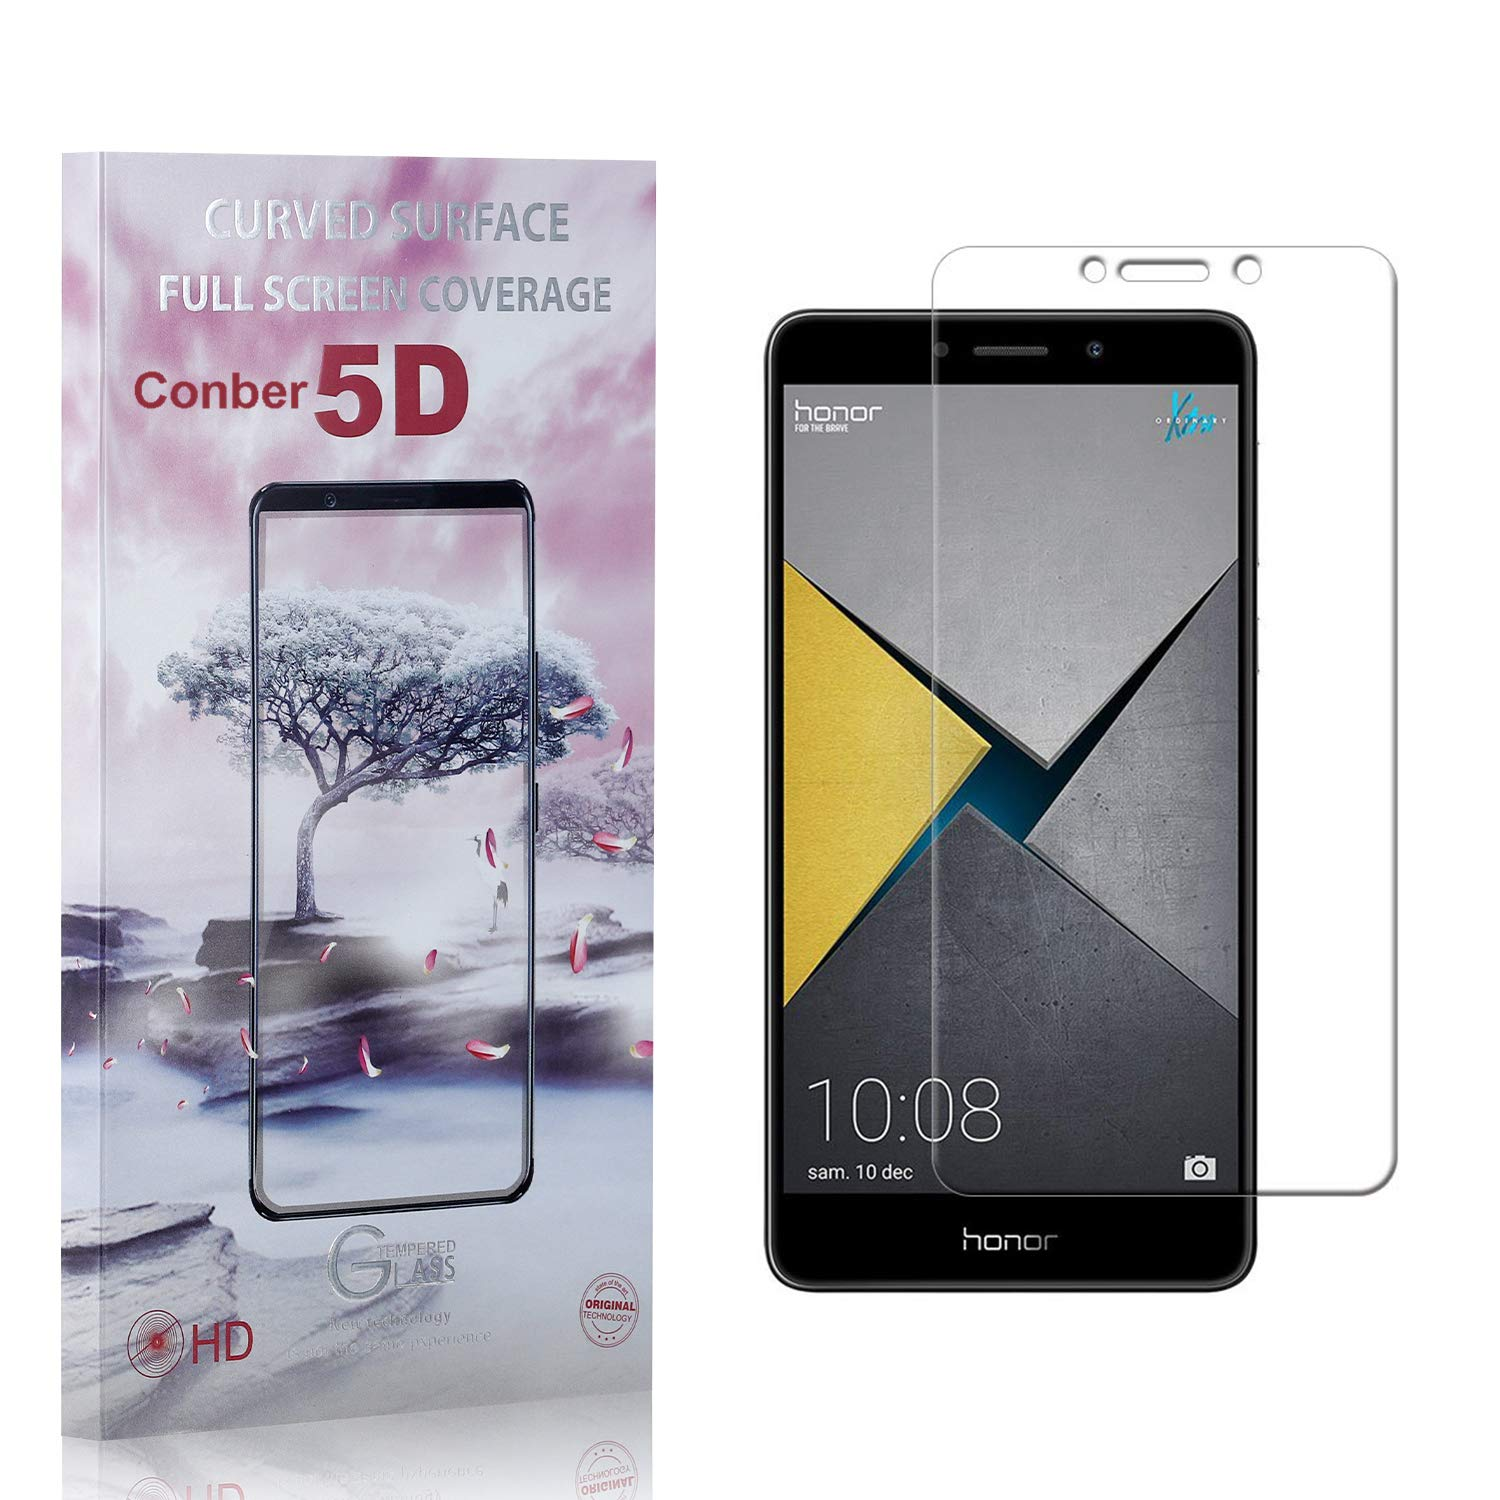 Conber 3 Pack Screen Protector Popular products Anti-Shat Long-awaited for Honor 6X Huawei